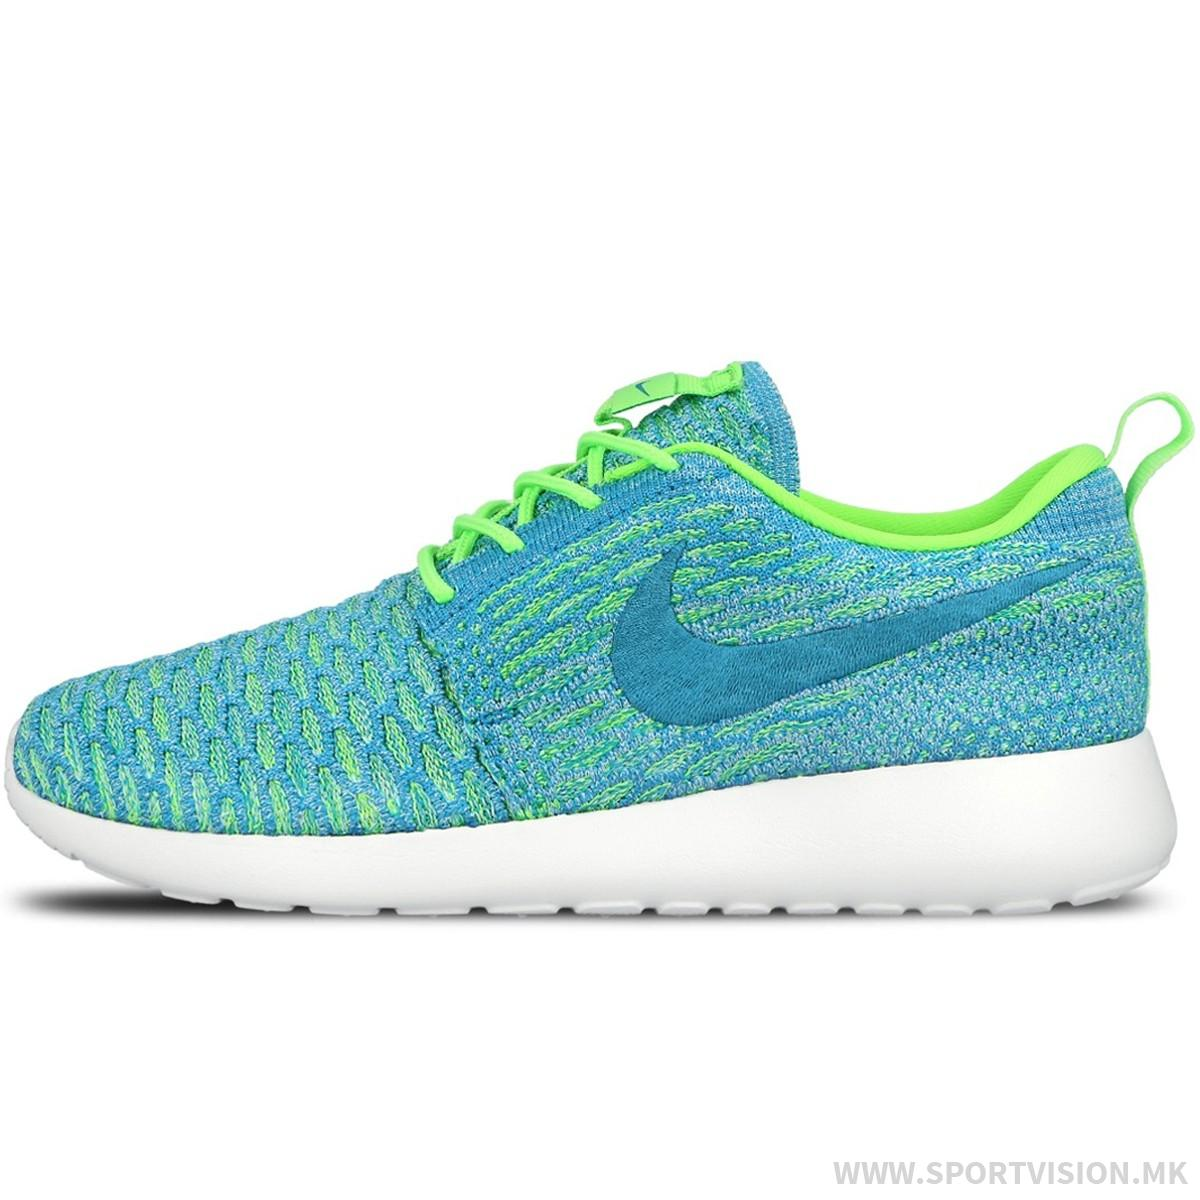 WMNS ROSHE ONE FLYKNIT